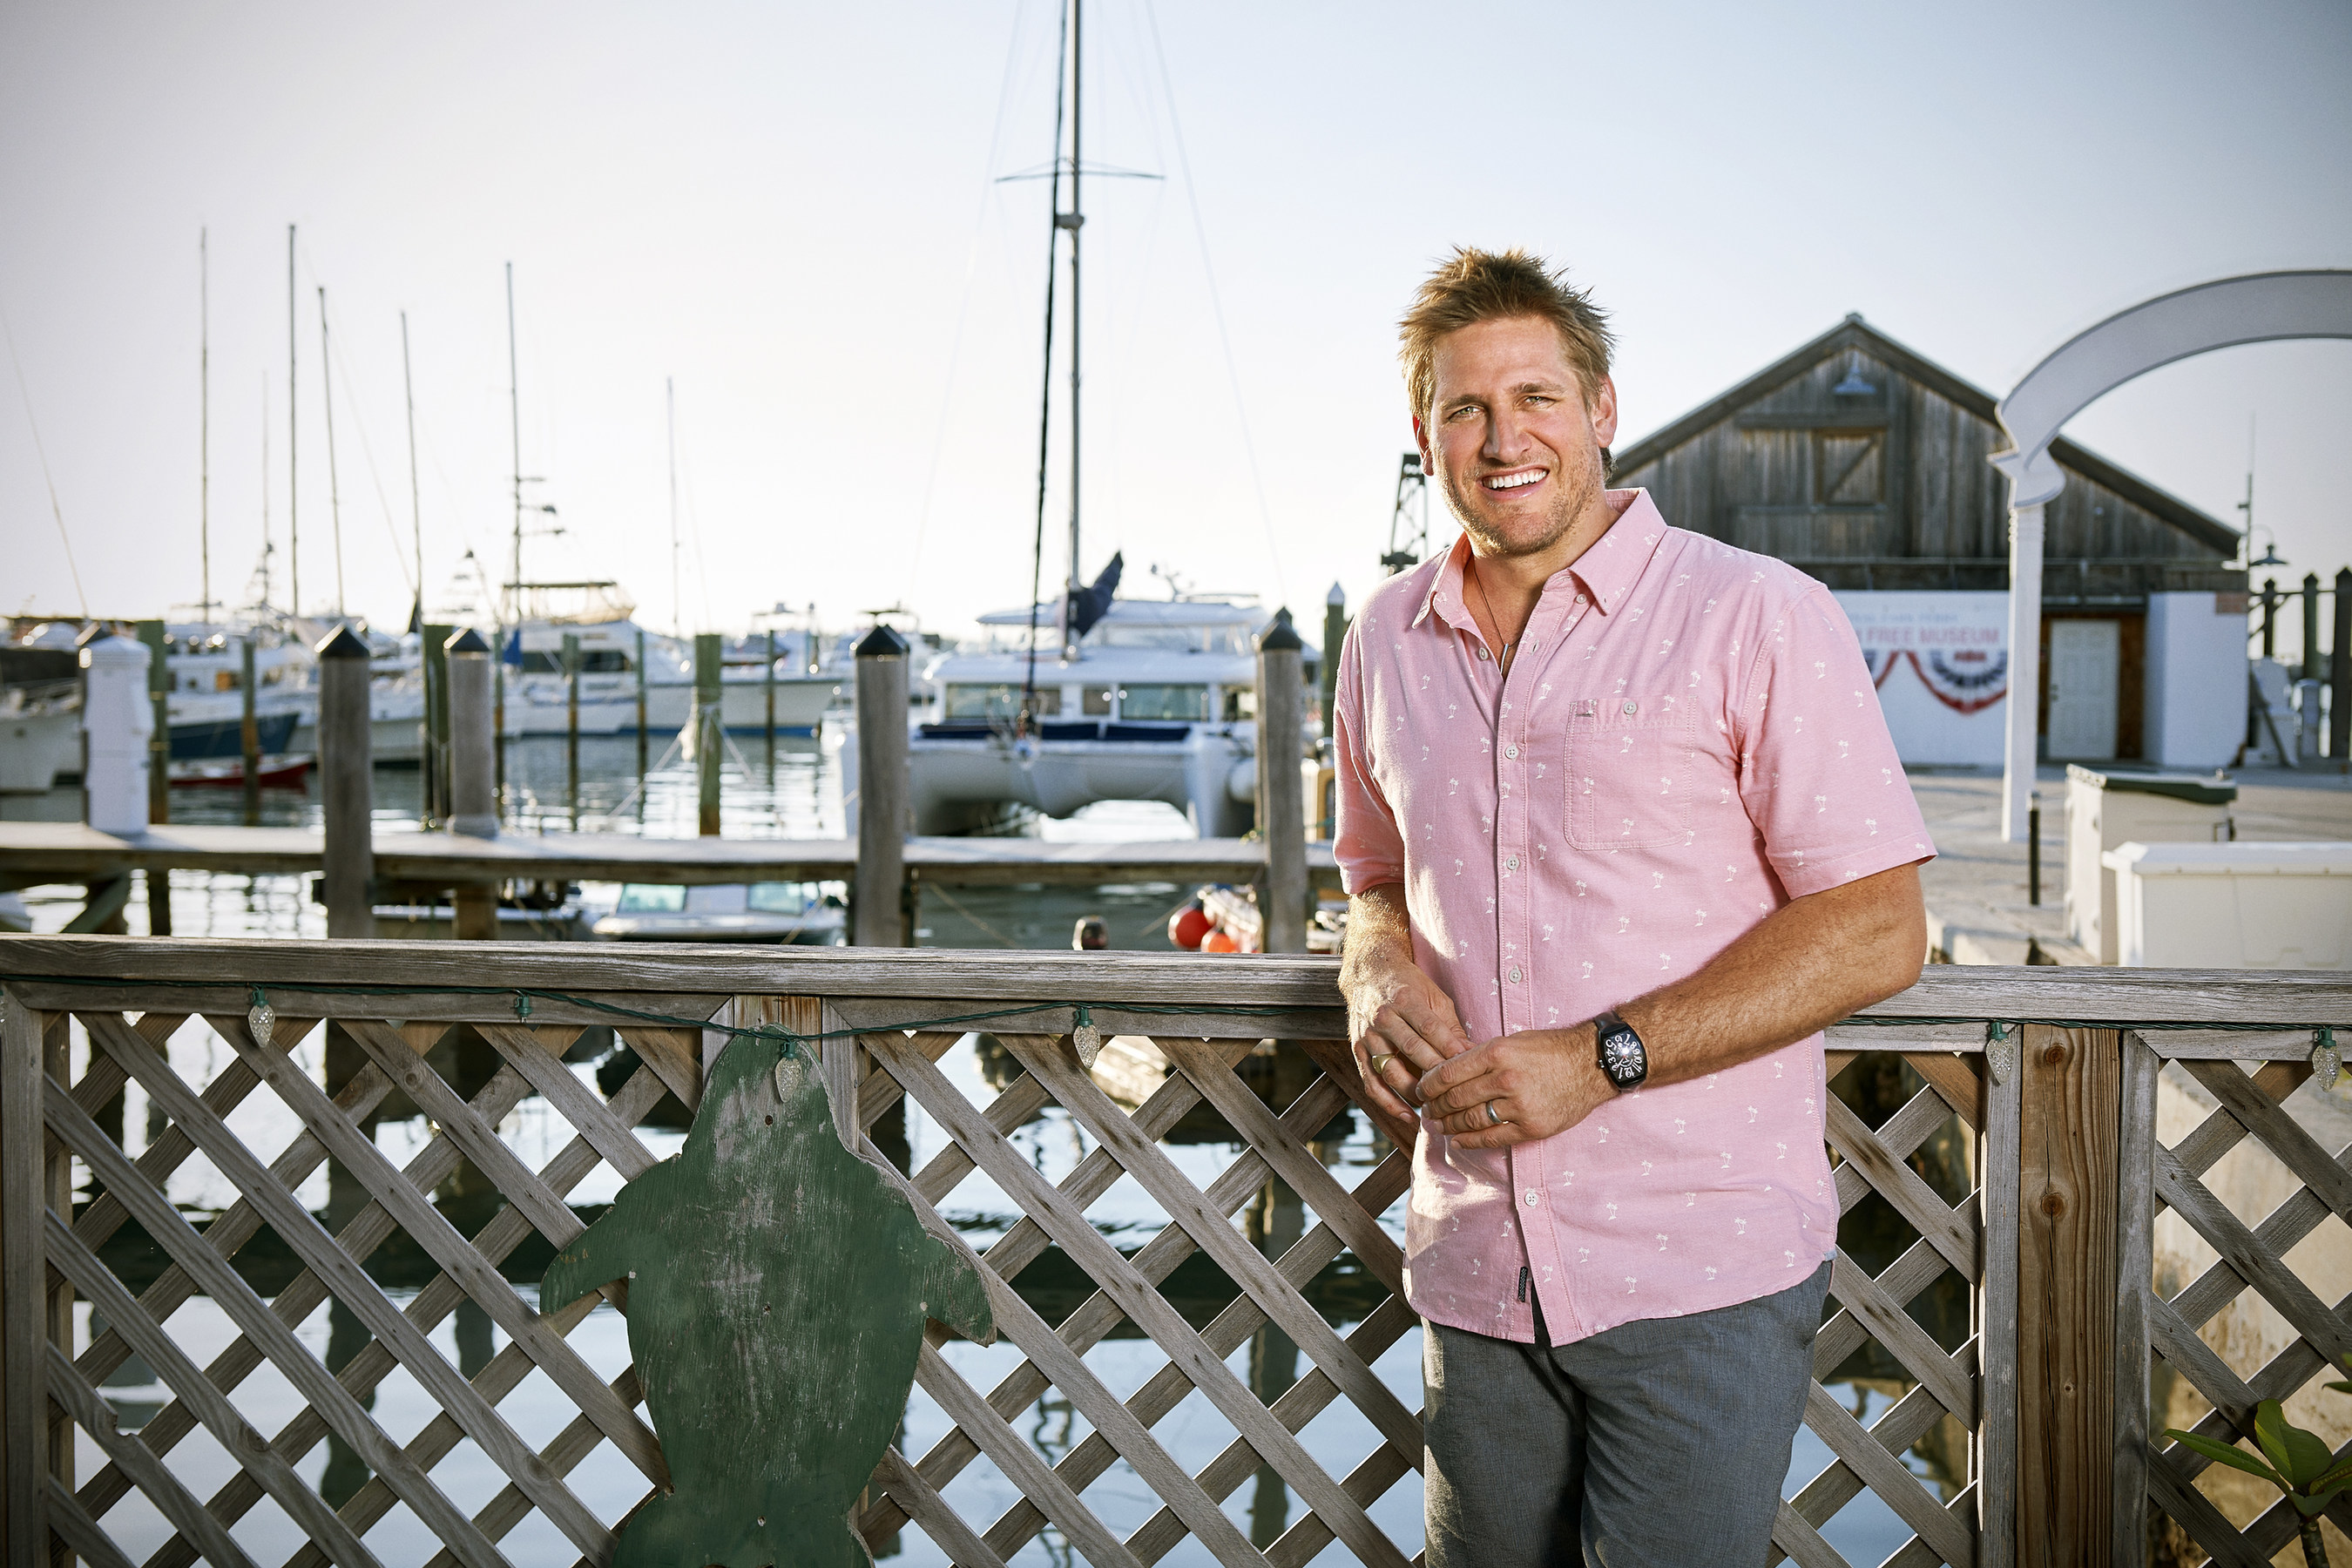 Bring Your Sunscreen And Your Appetite For Food Network's Beach Eats USA With Host Curtis Stone